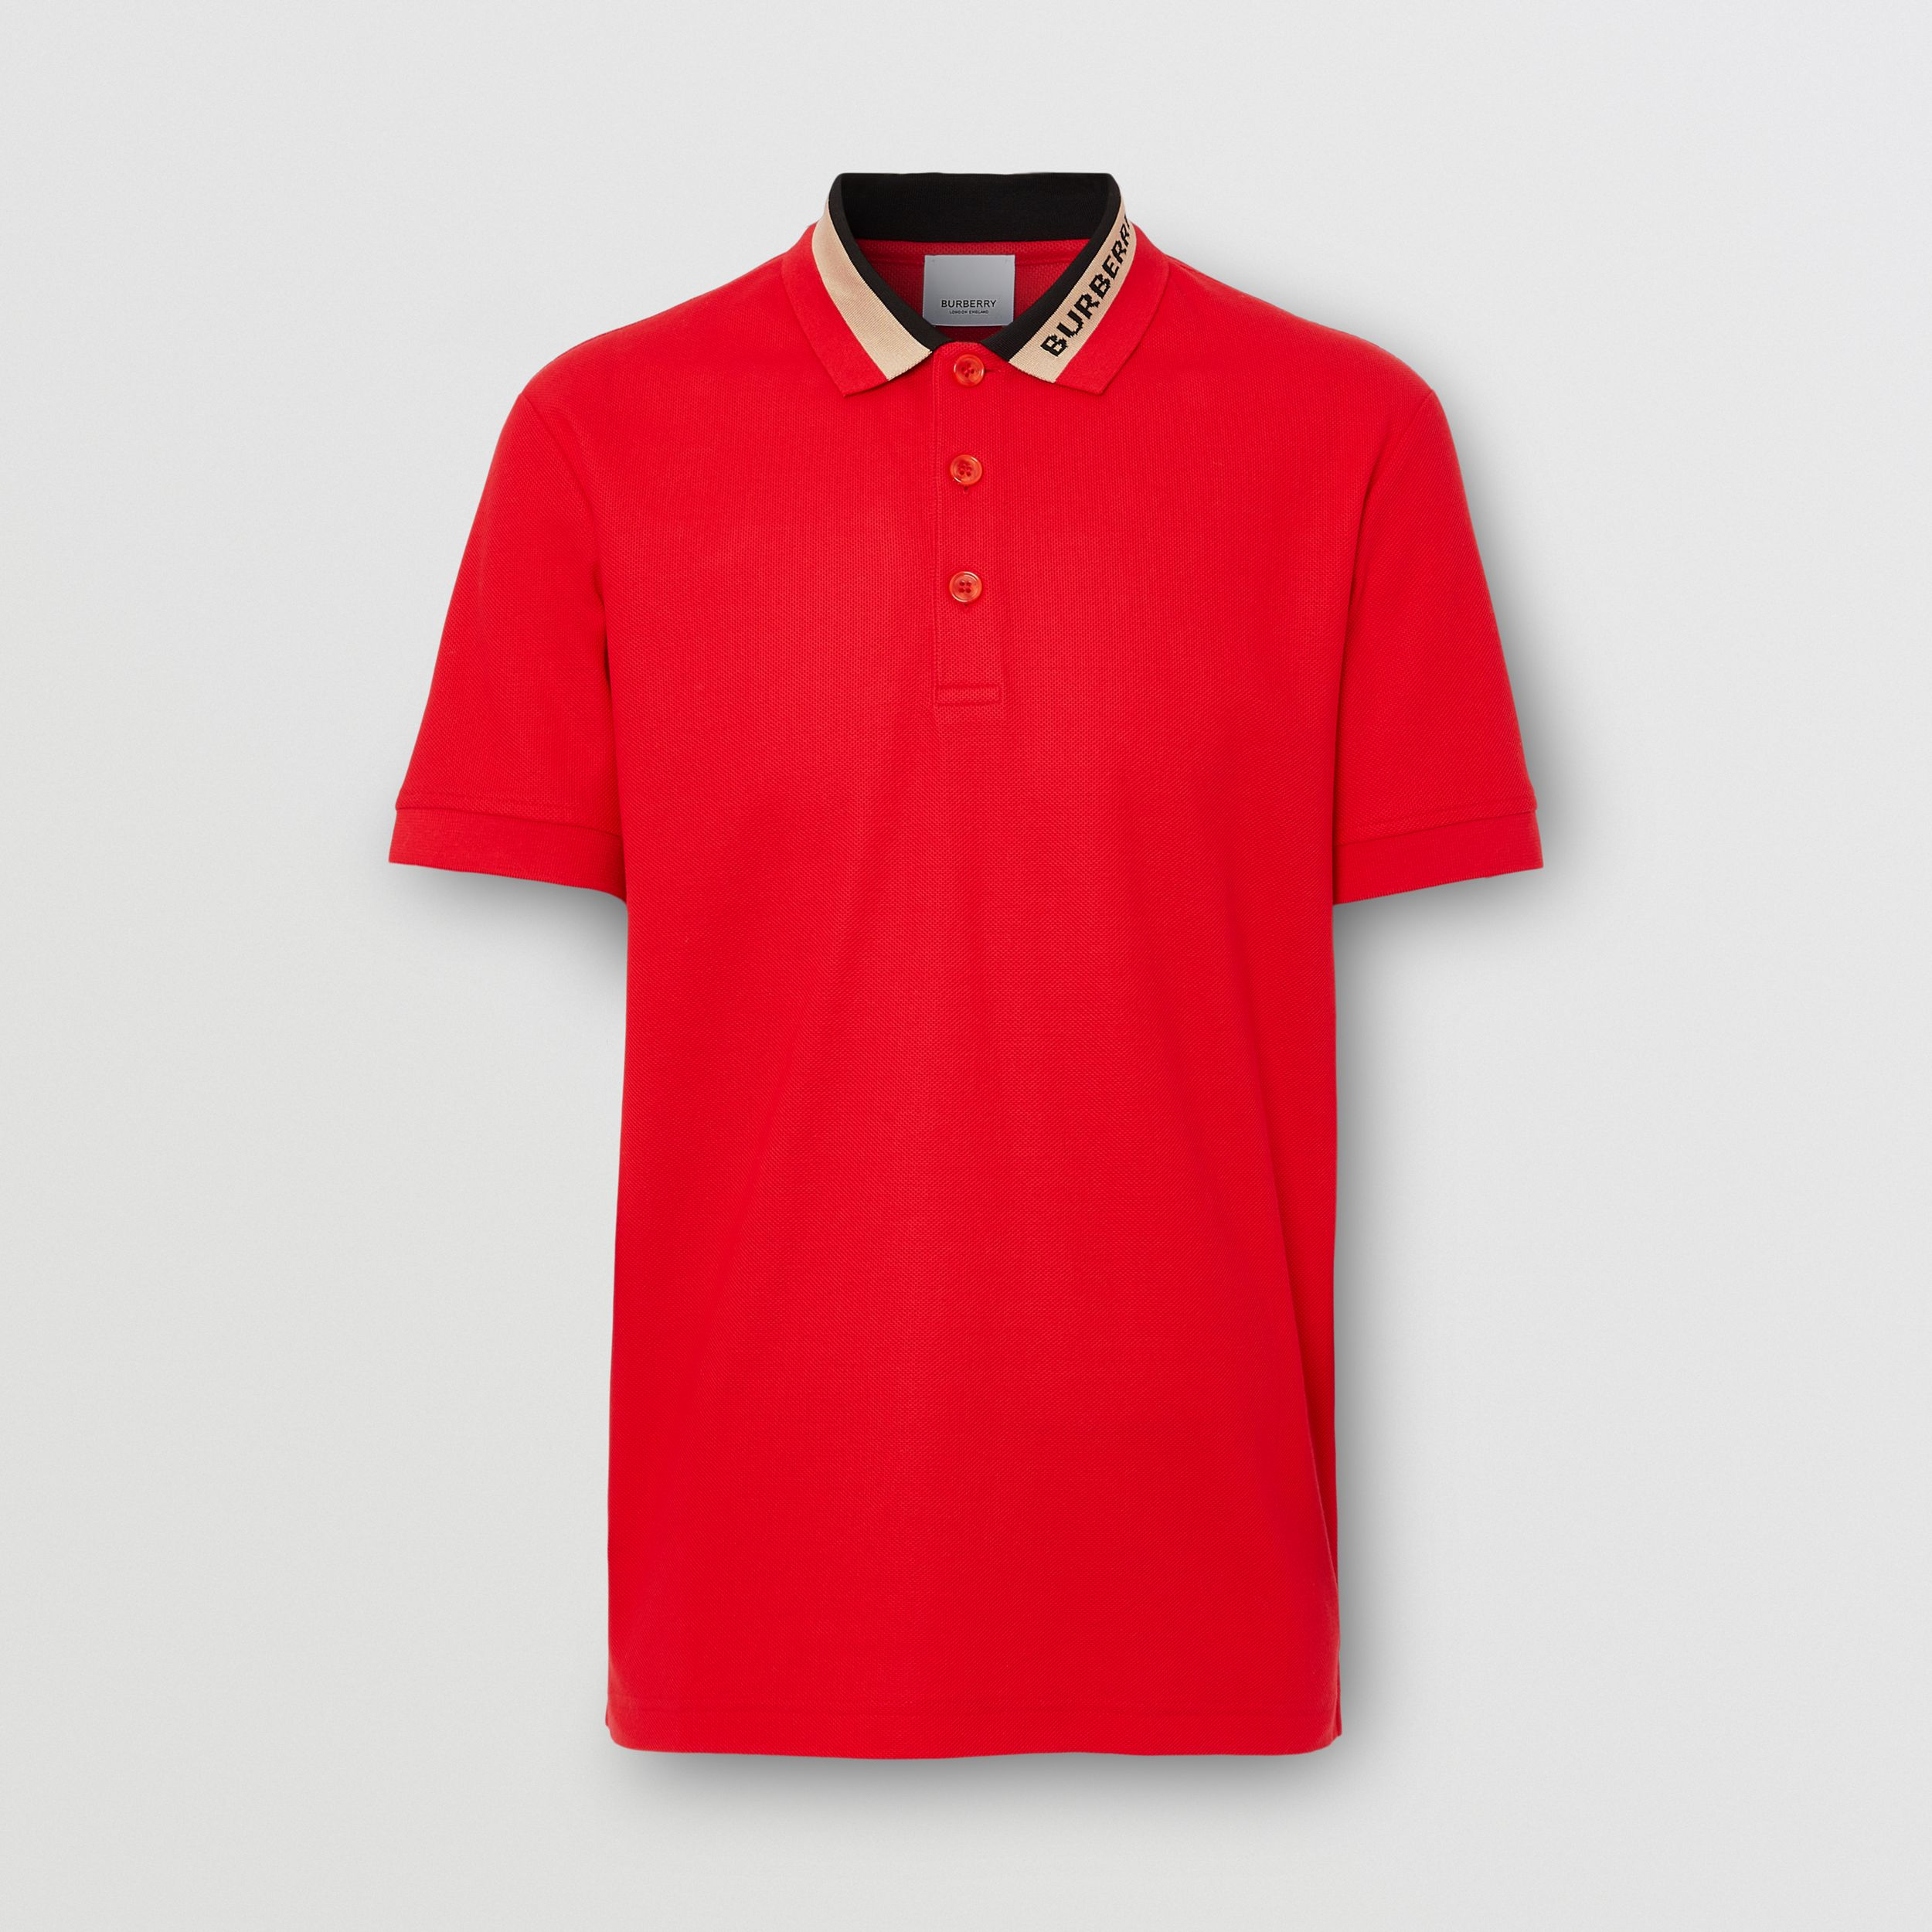 Logo Detail Cotton Piqué Polo Shirt in Bright Red - Men | Burberry - 4